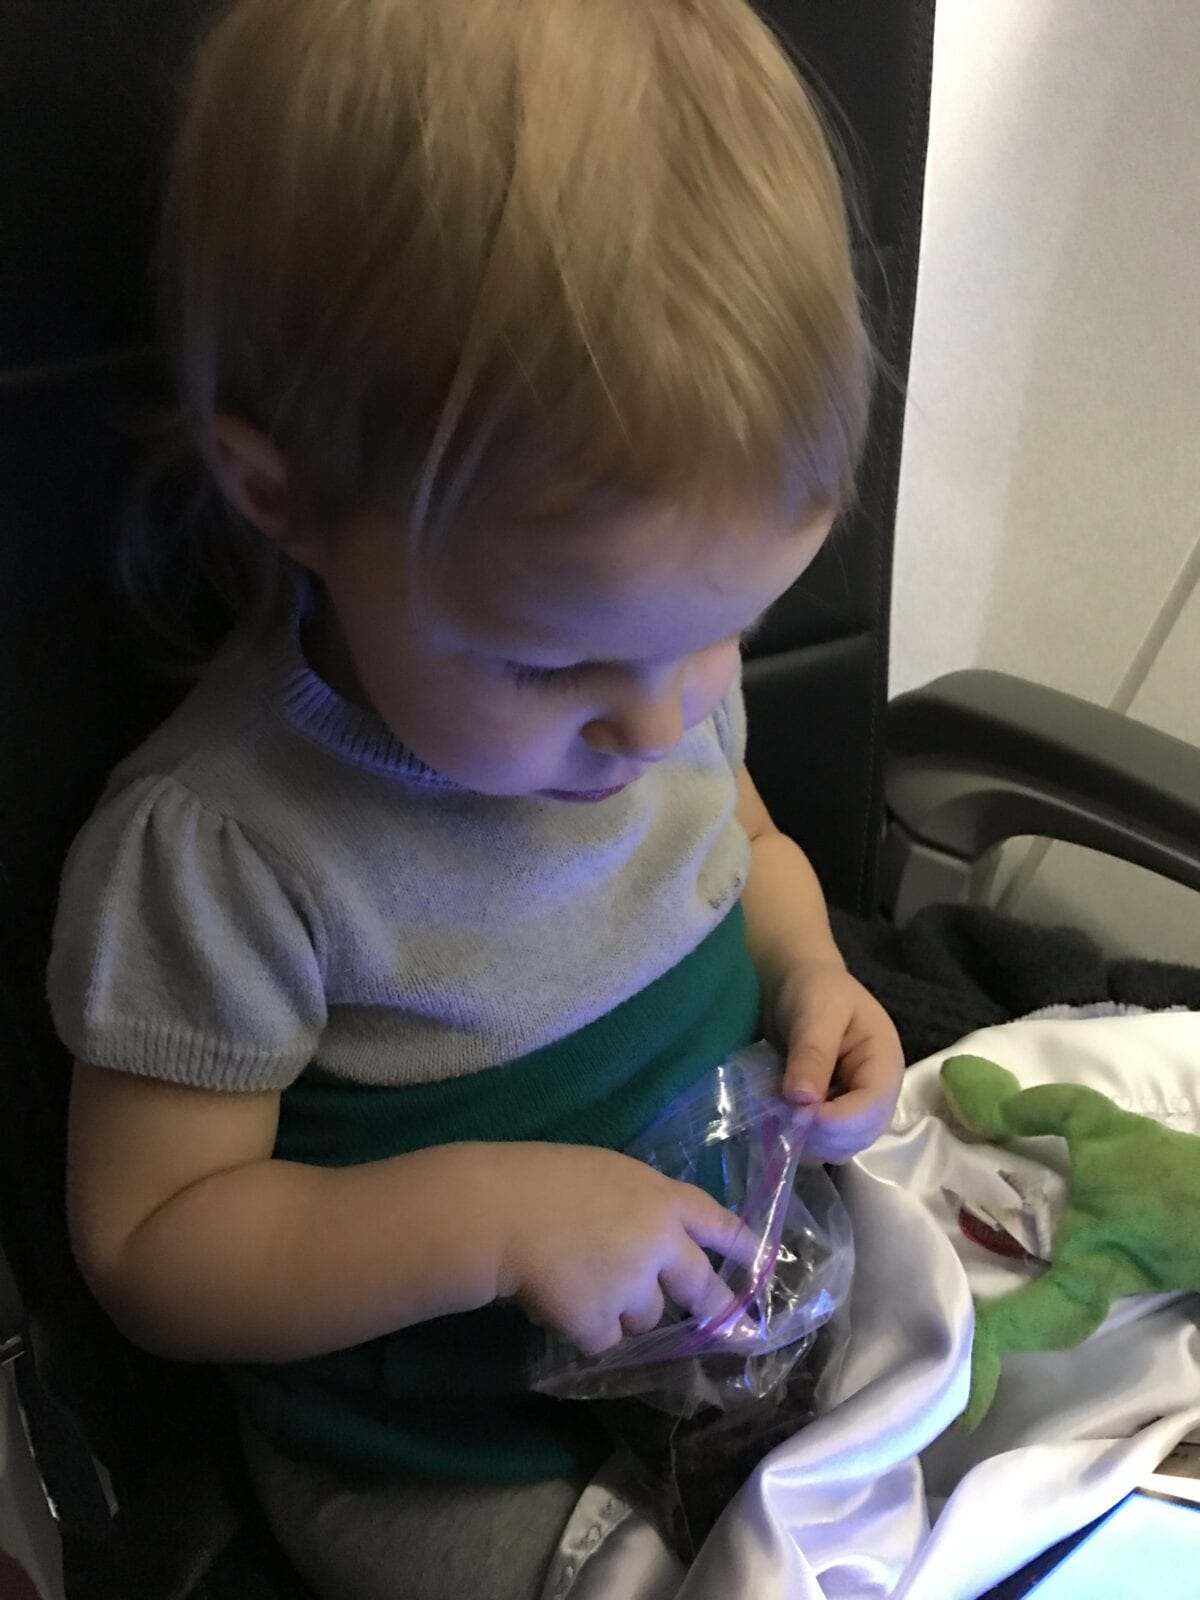 Child on plane eating grapes and watching iPad image.